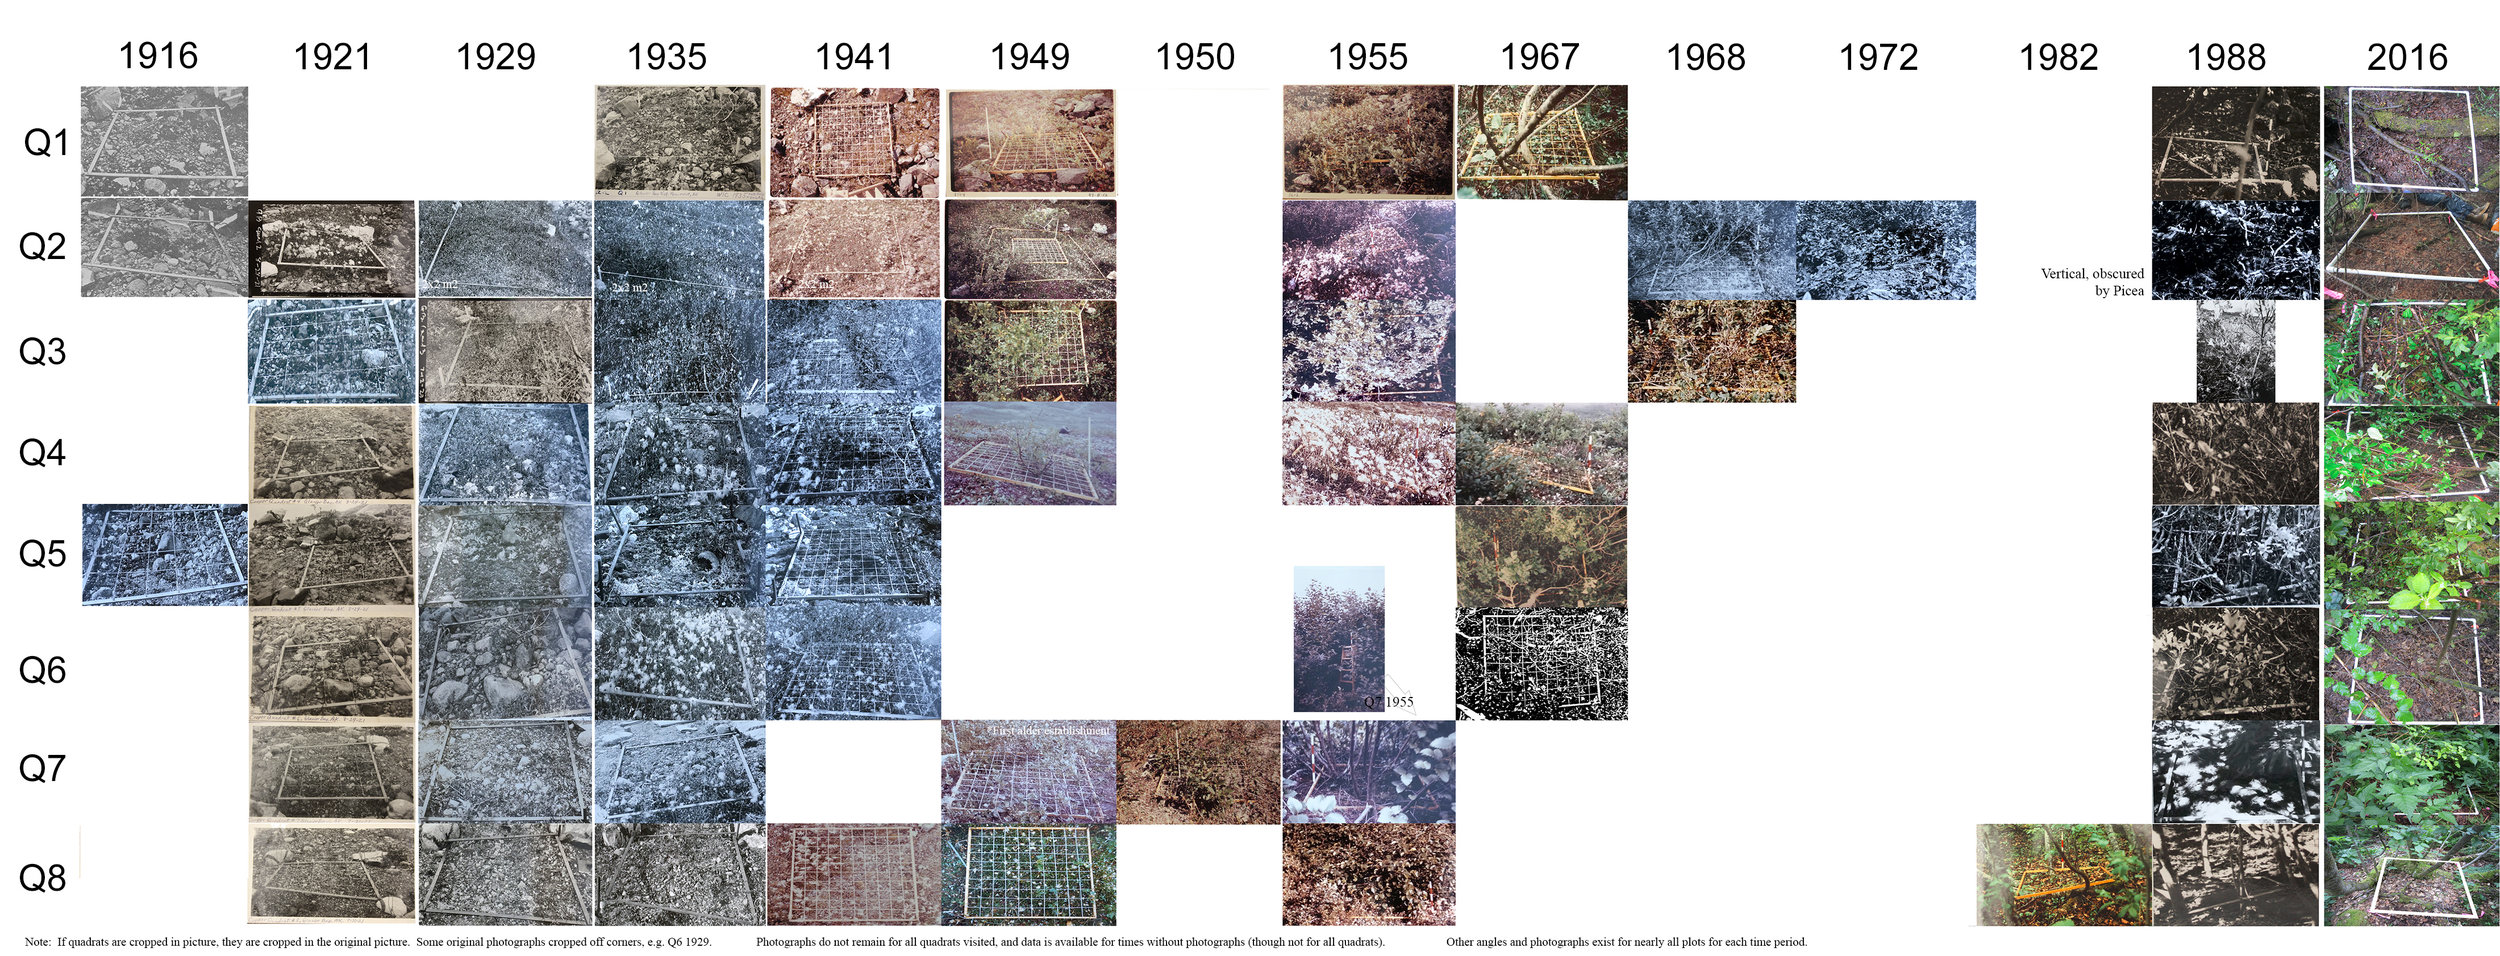 Current known pictures of the permanent plot network.  Click on image to see entire range (1916 - 2016).  Higher resolution available upon request, brian.buma@ucdenver.edu.